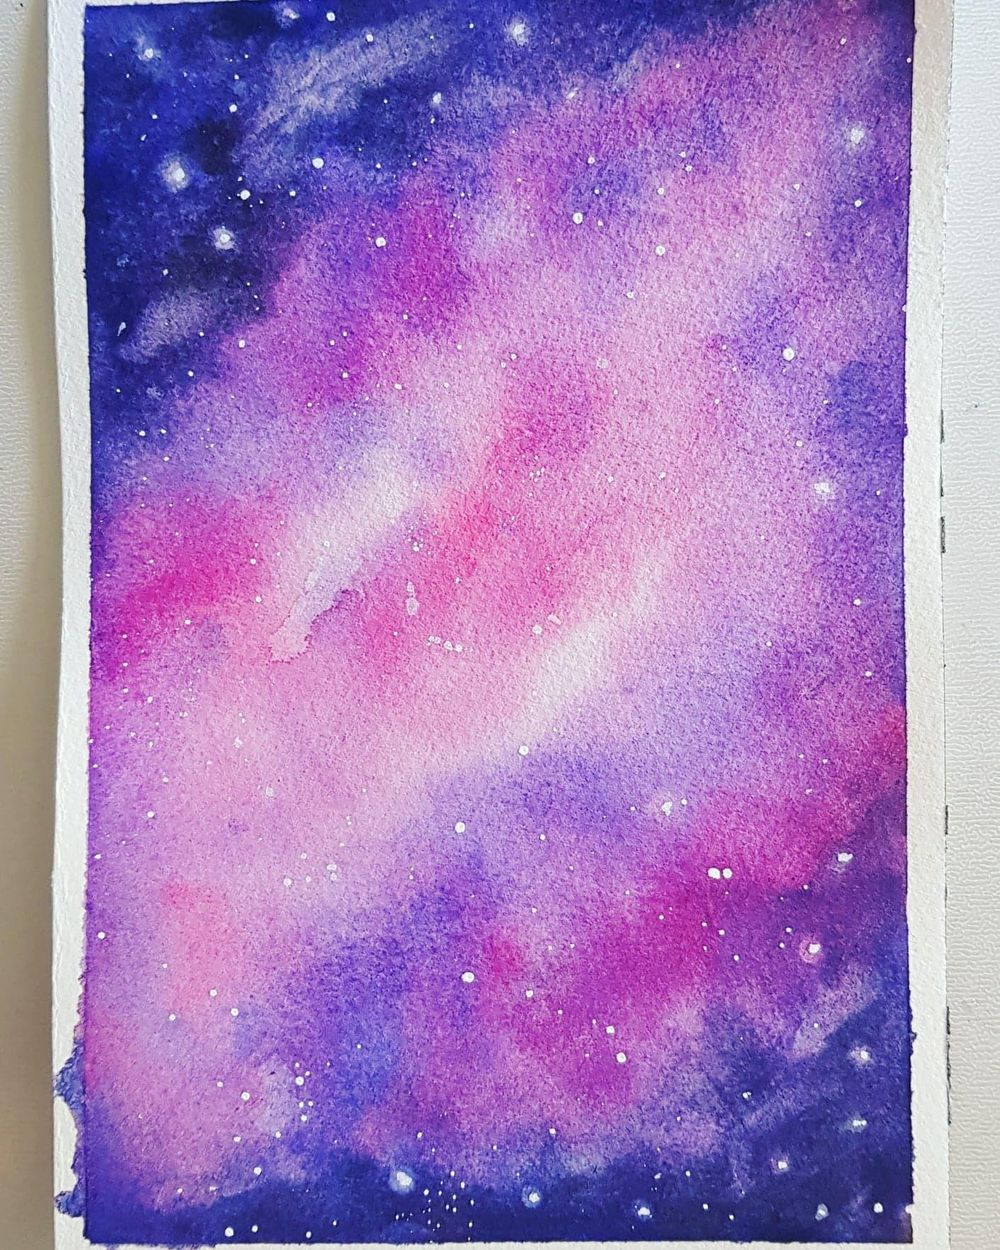 Galaxy - Watercolor - image 1 - student project